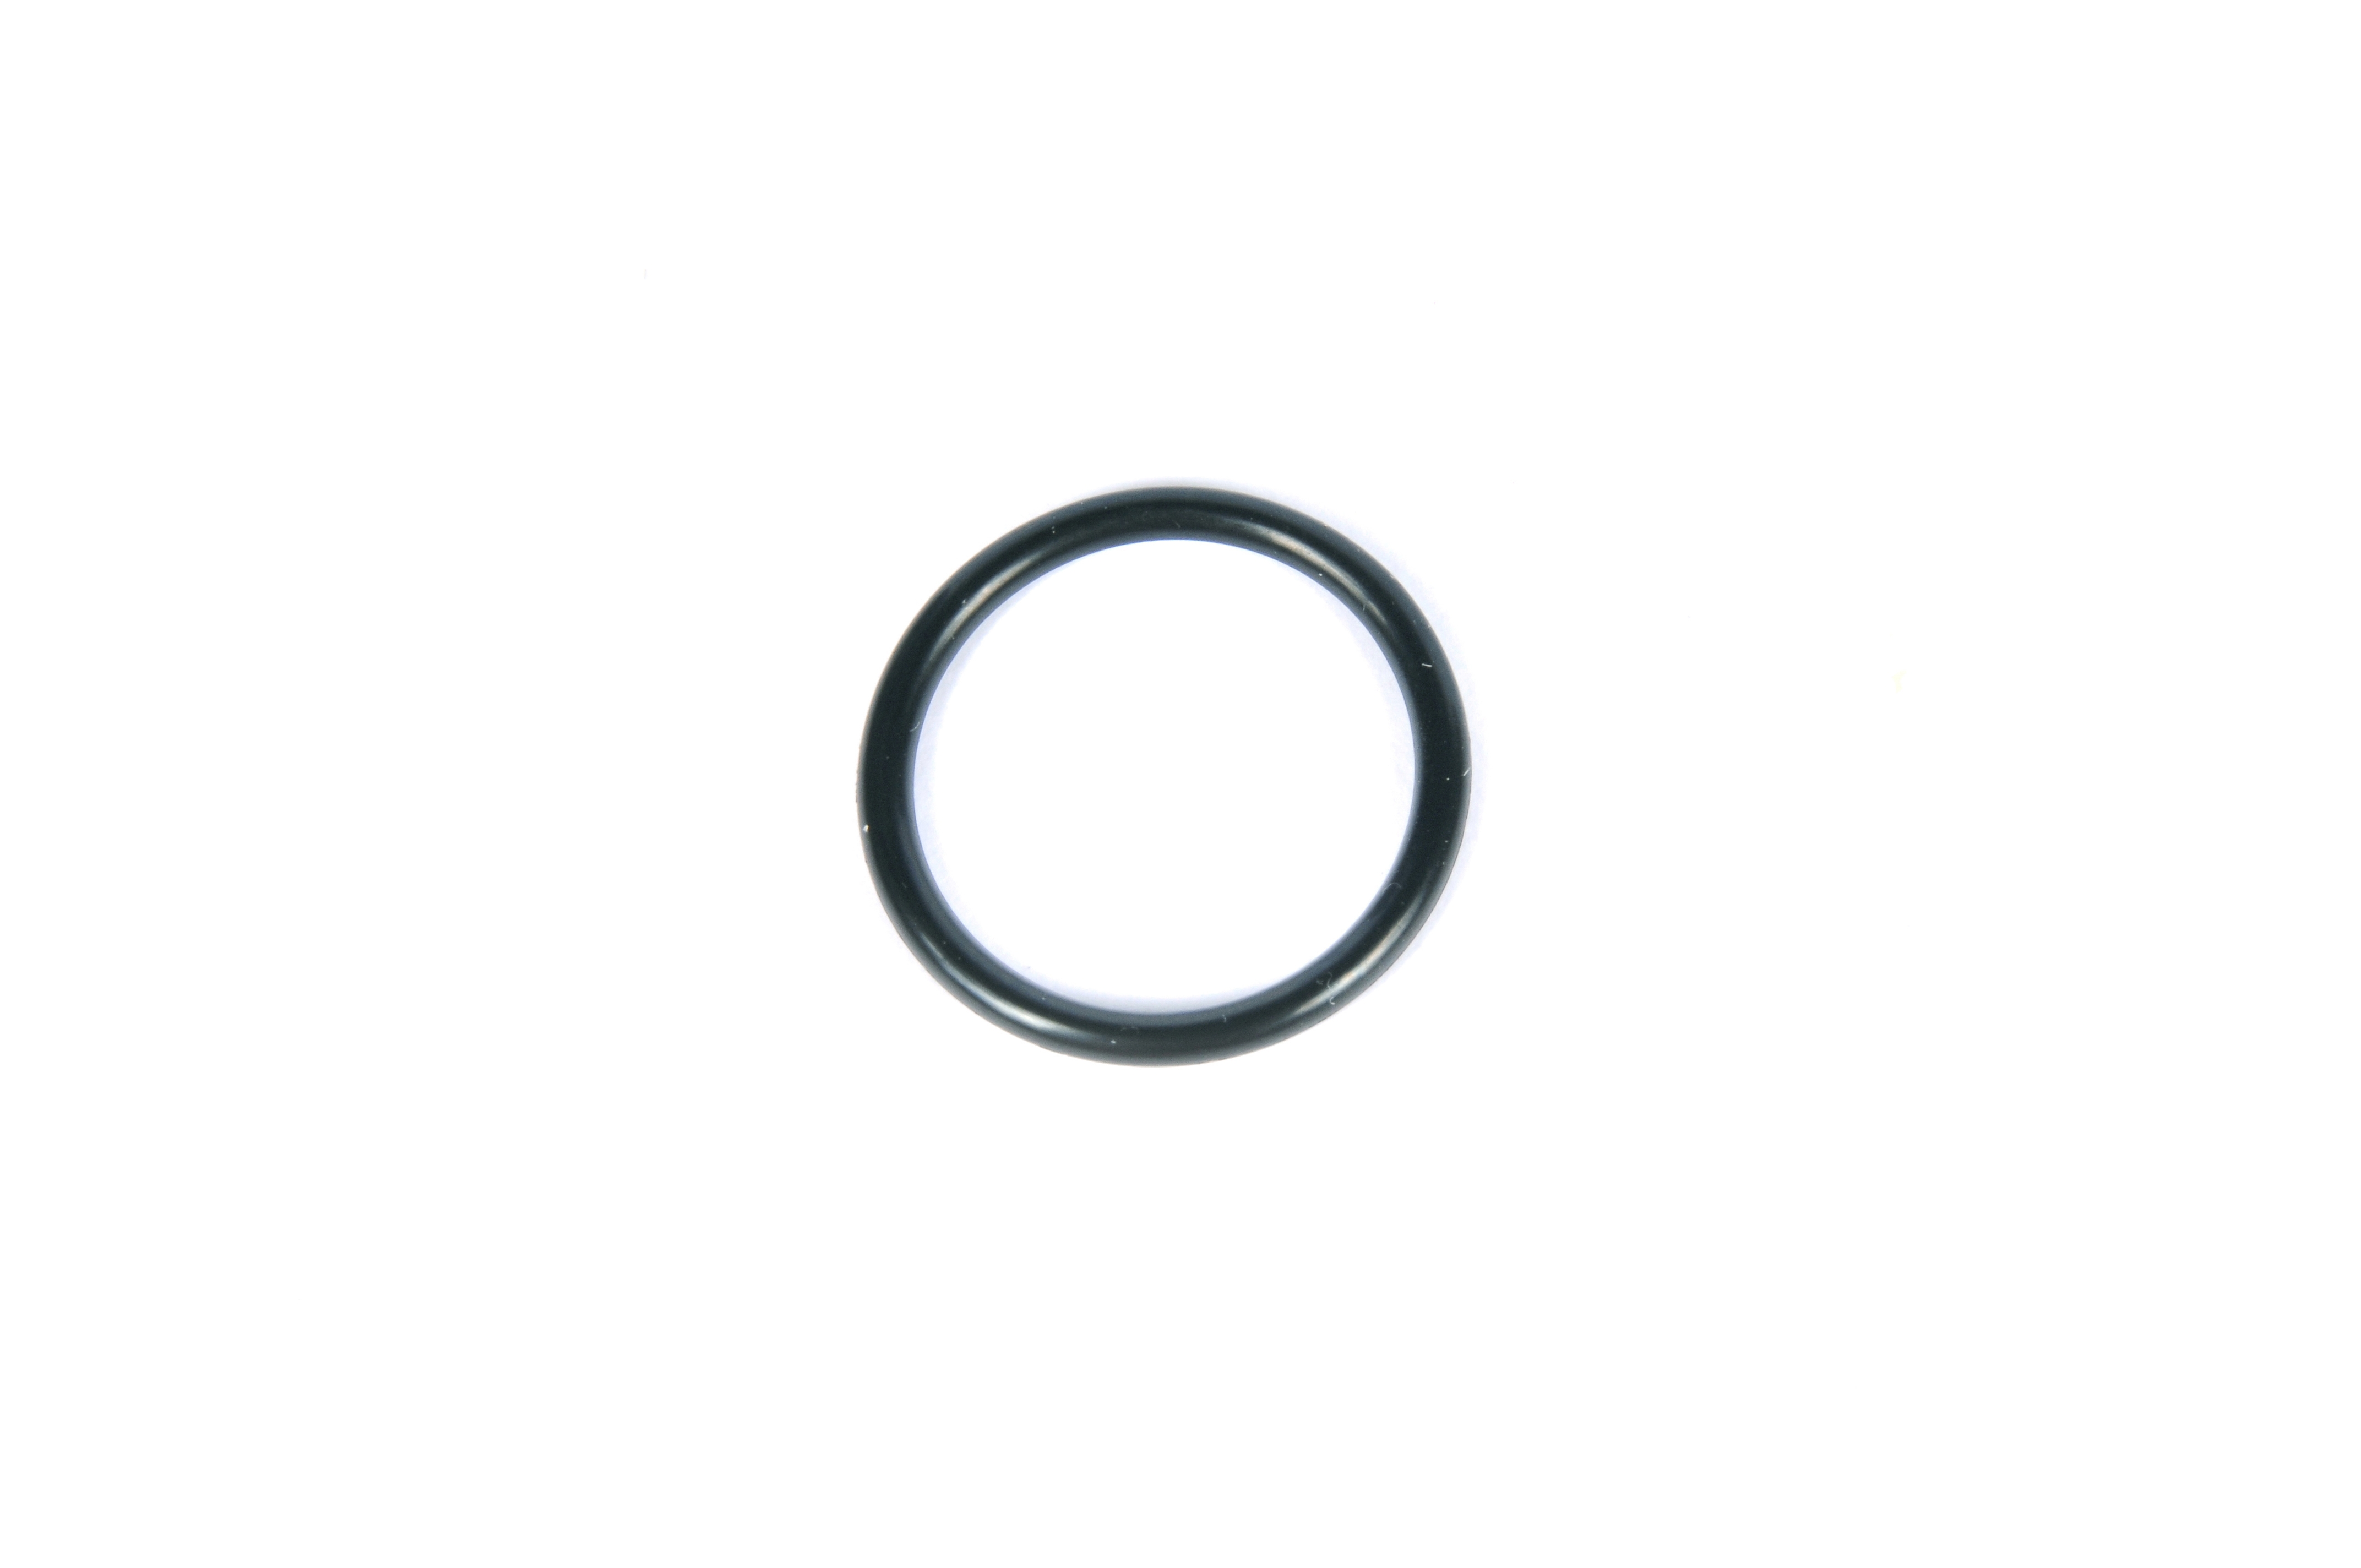 ACDELCO OE SERVICE - A/T Wirng Conn Seal-O-Ring - DCB 24220595